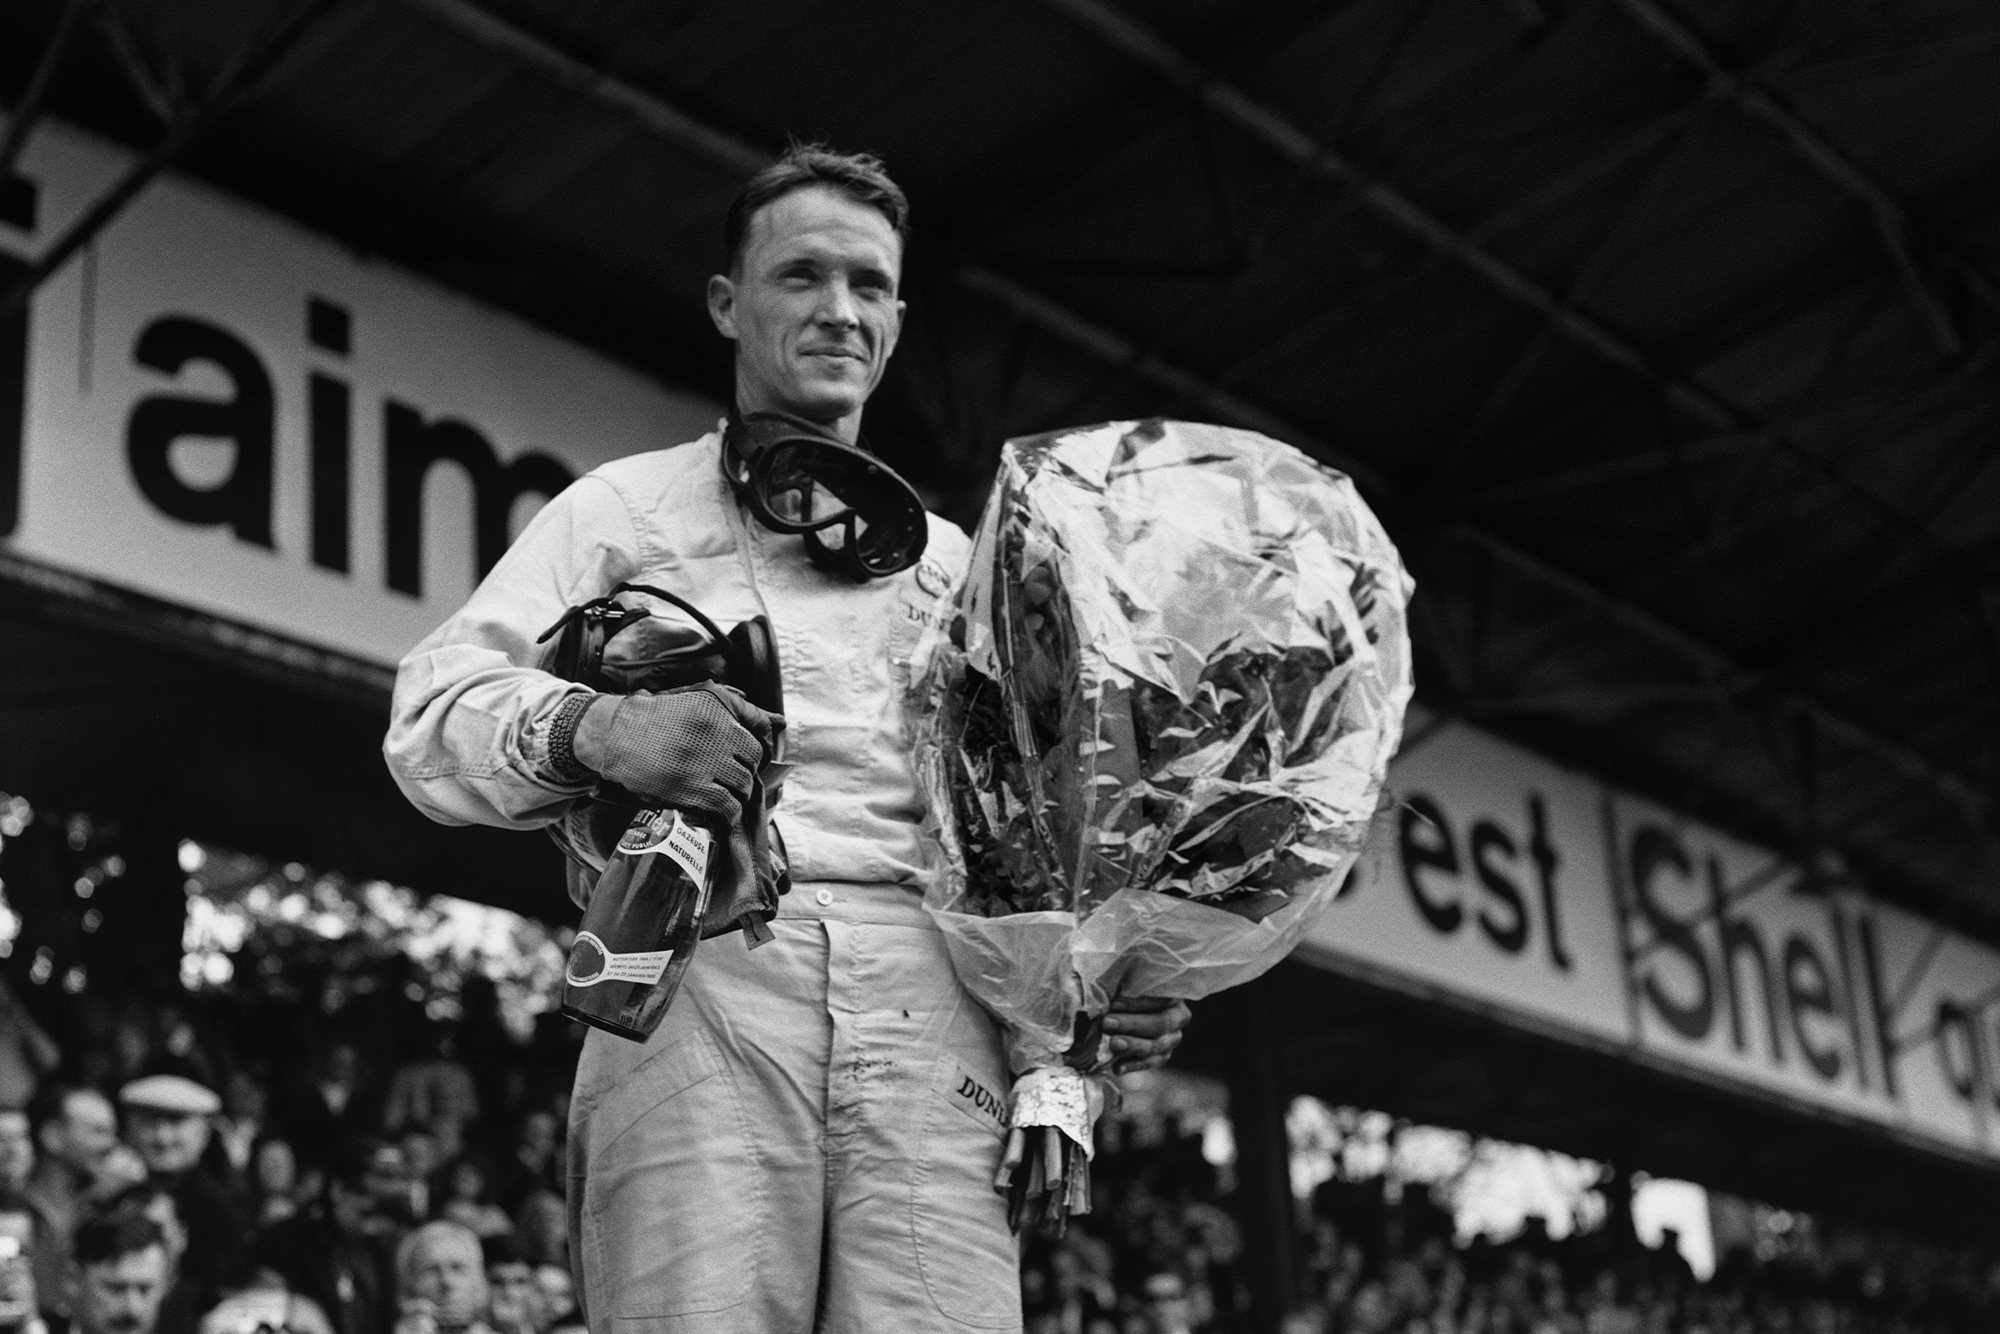 Brabham's Dan Gurney stands on the podium, champagne and bouquet in hand.